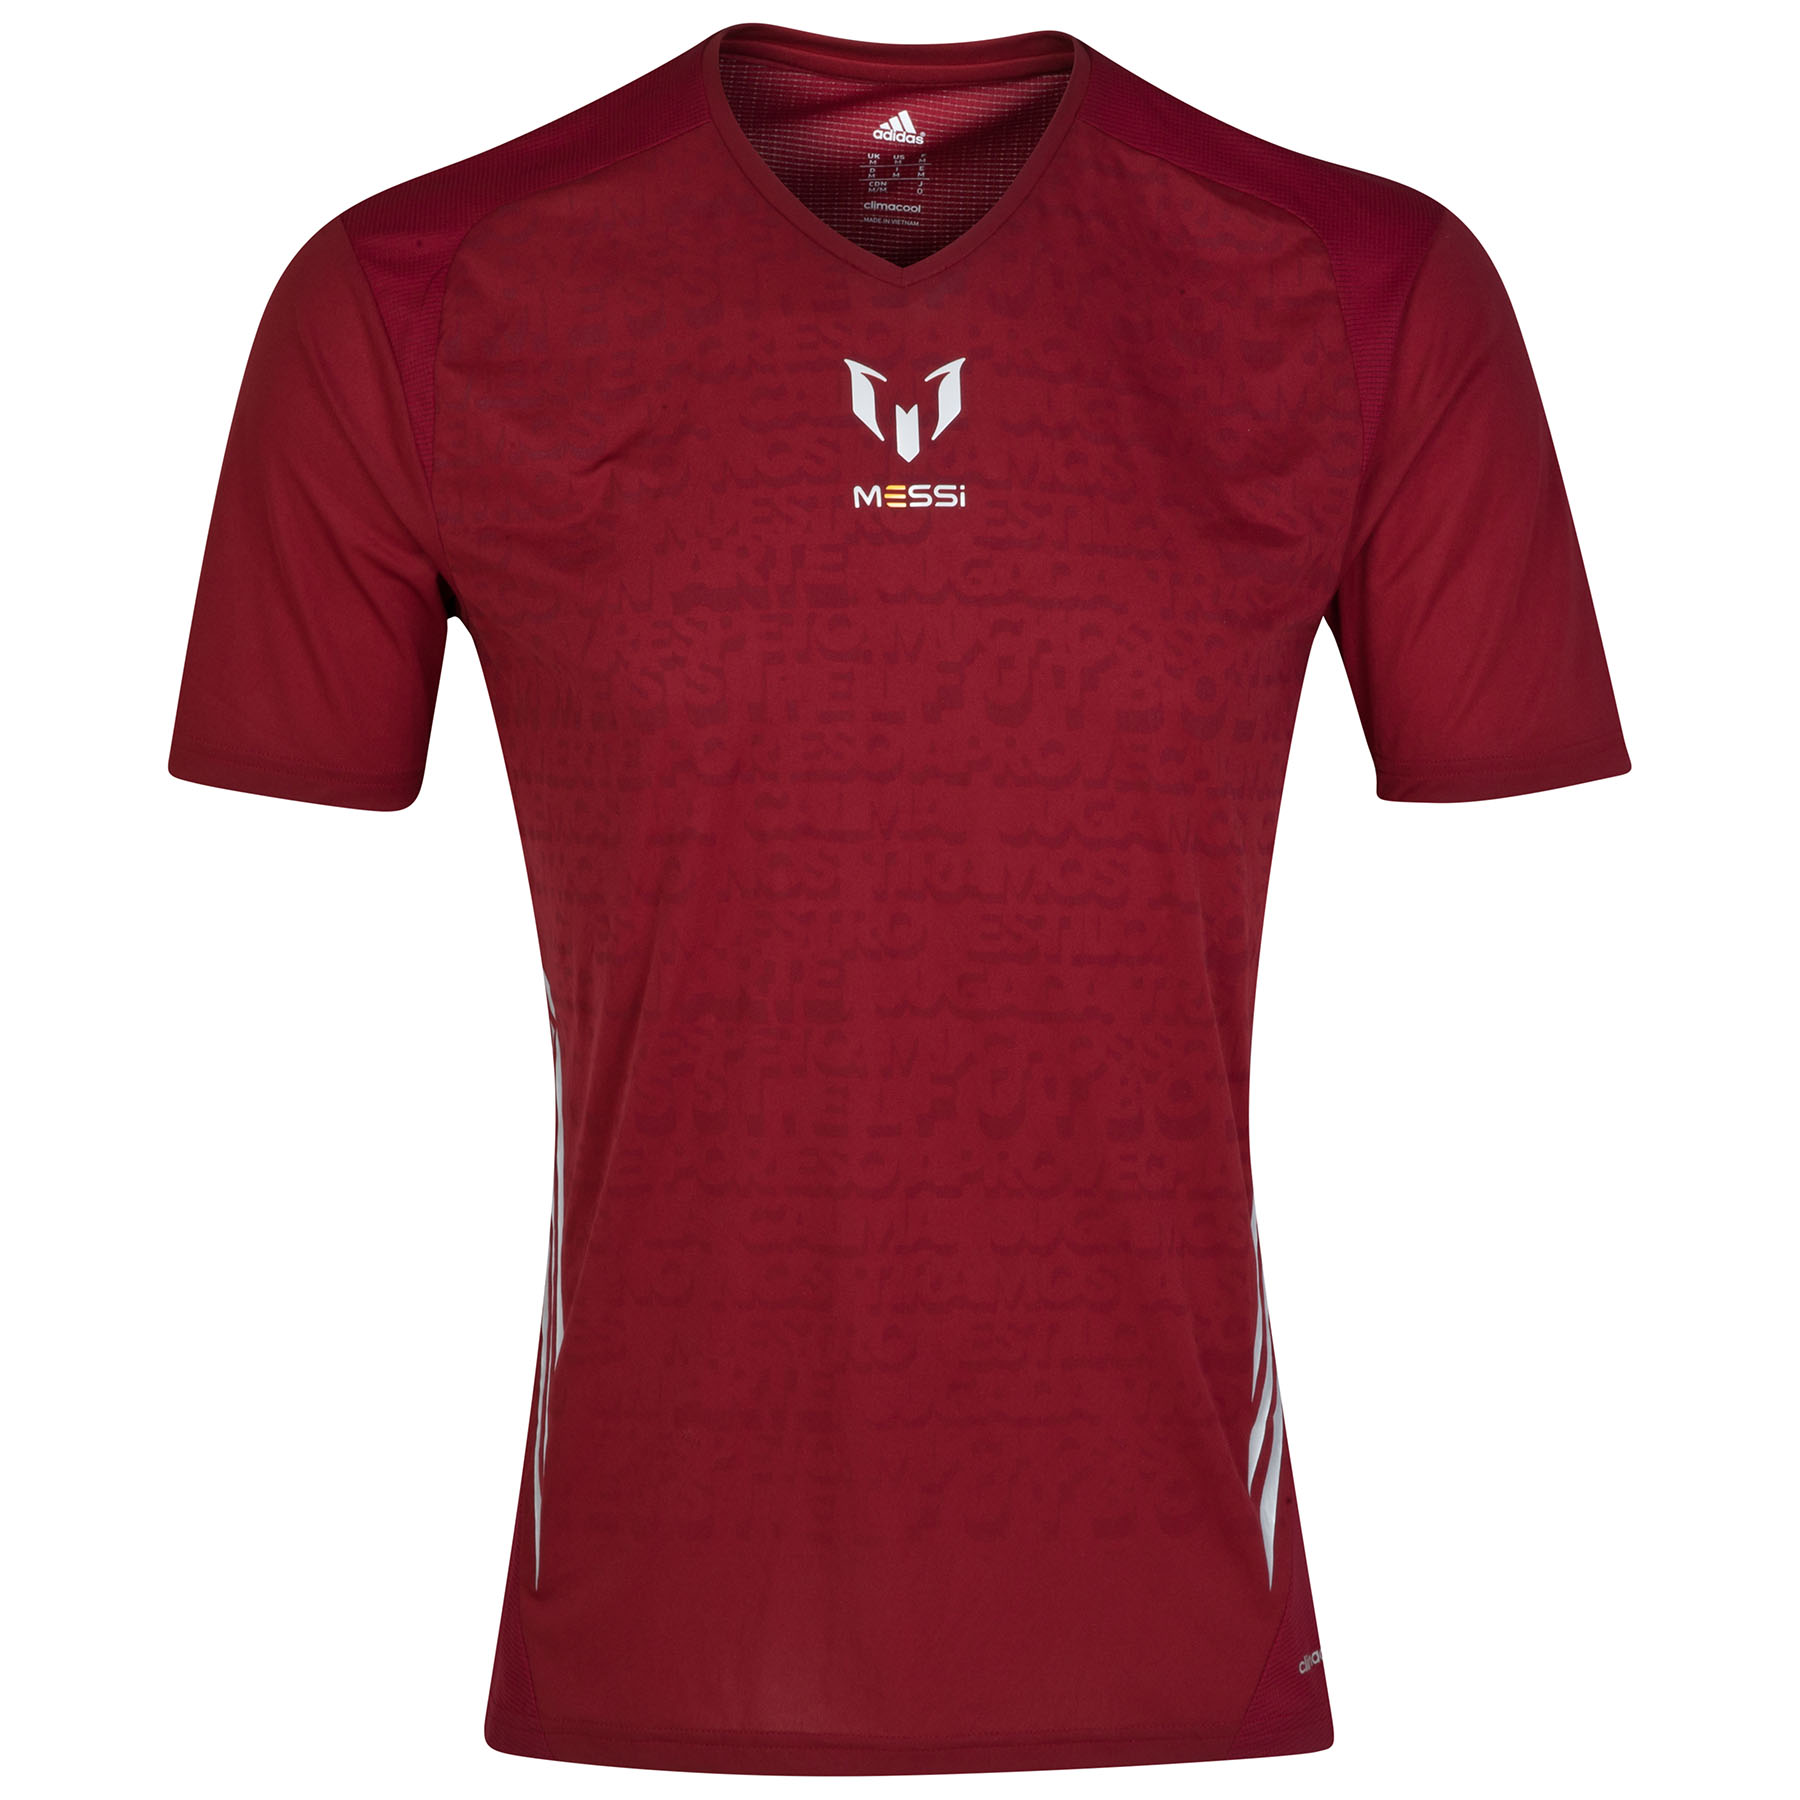 Adidas F50 Messi Training T-Shirt Red